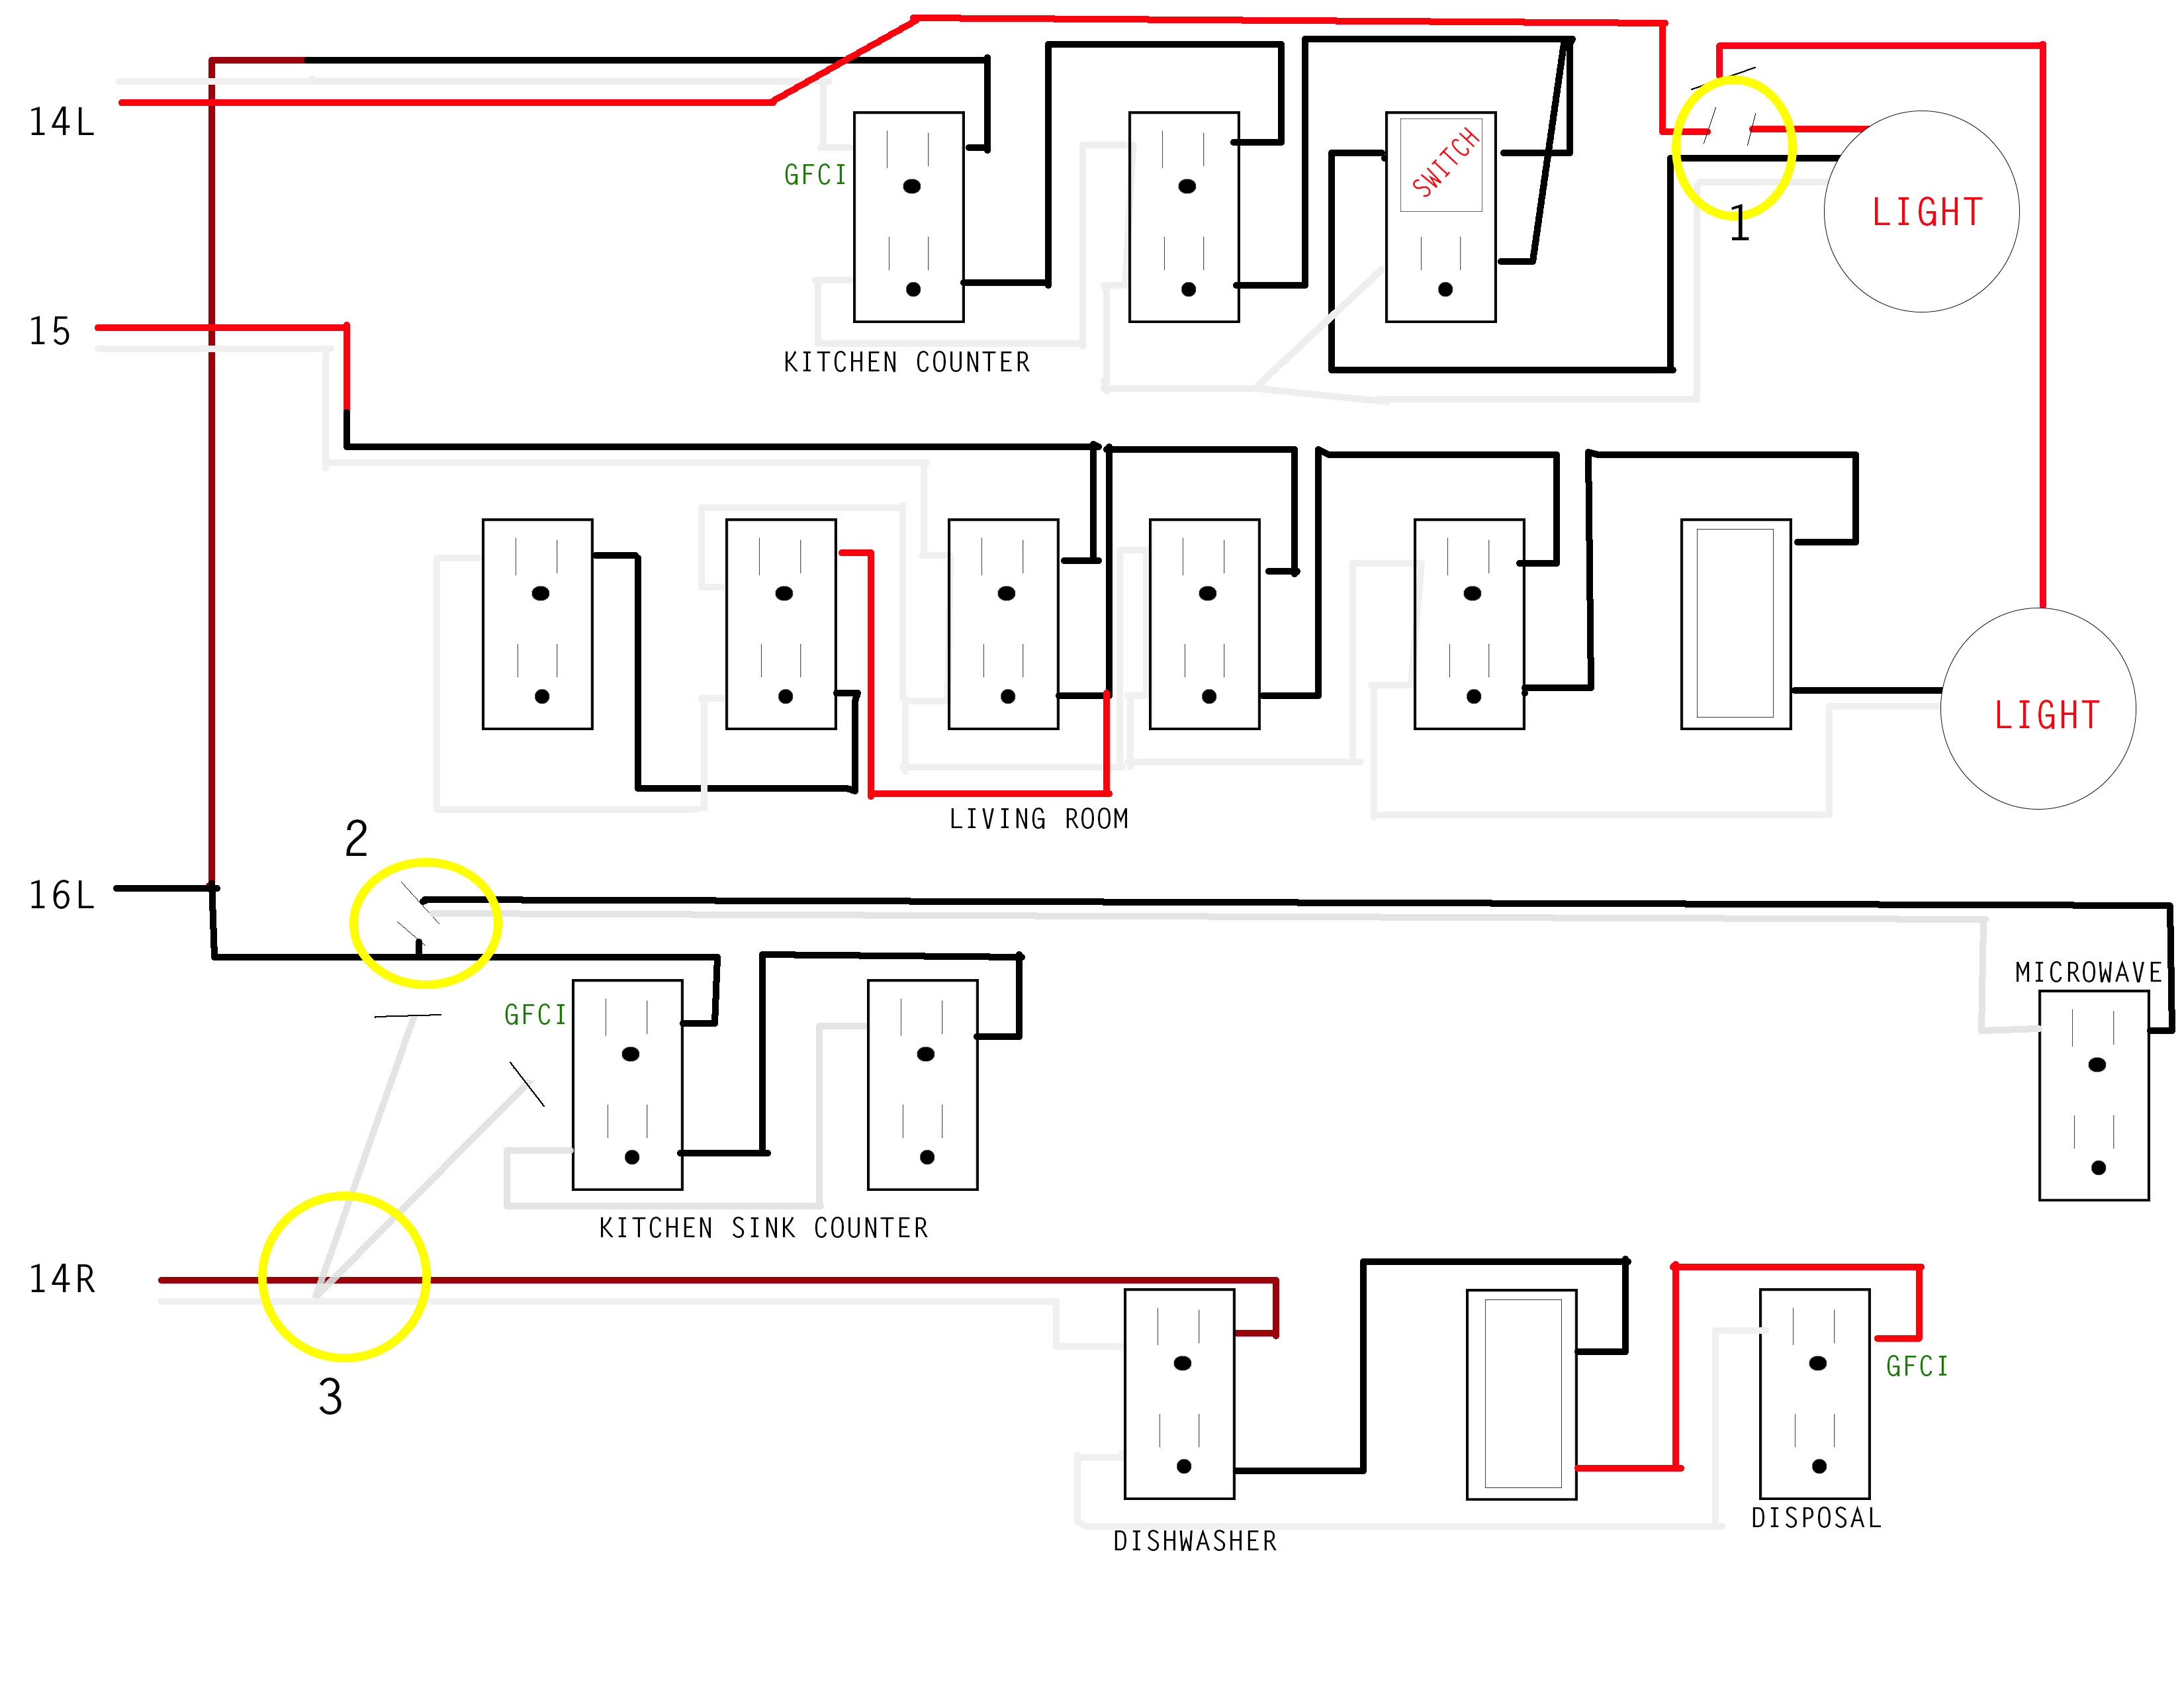 diy electrical wiring diagrams chicken wing diagram kitchen issue home improvement stack exchange